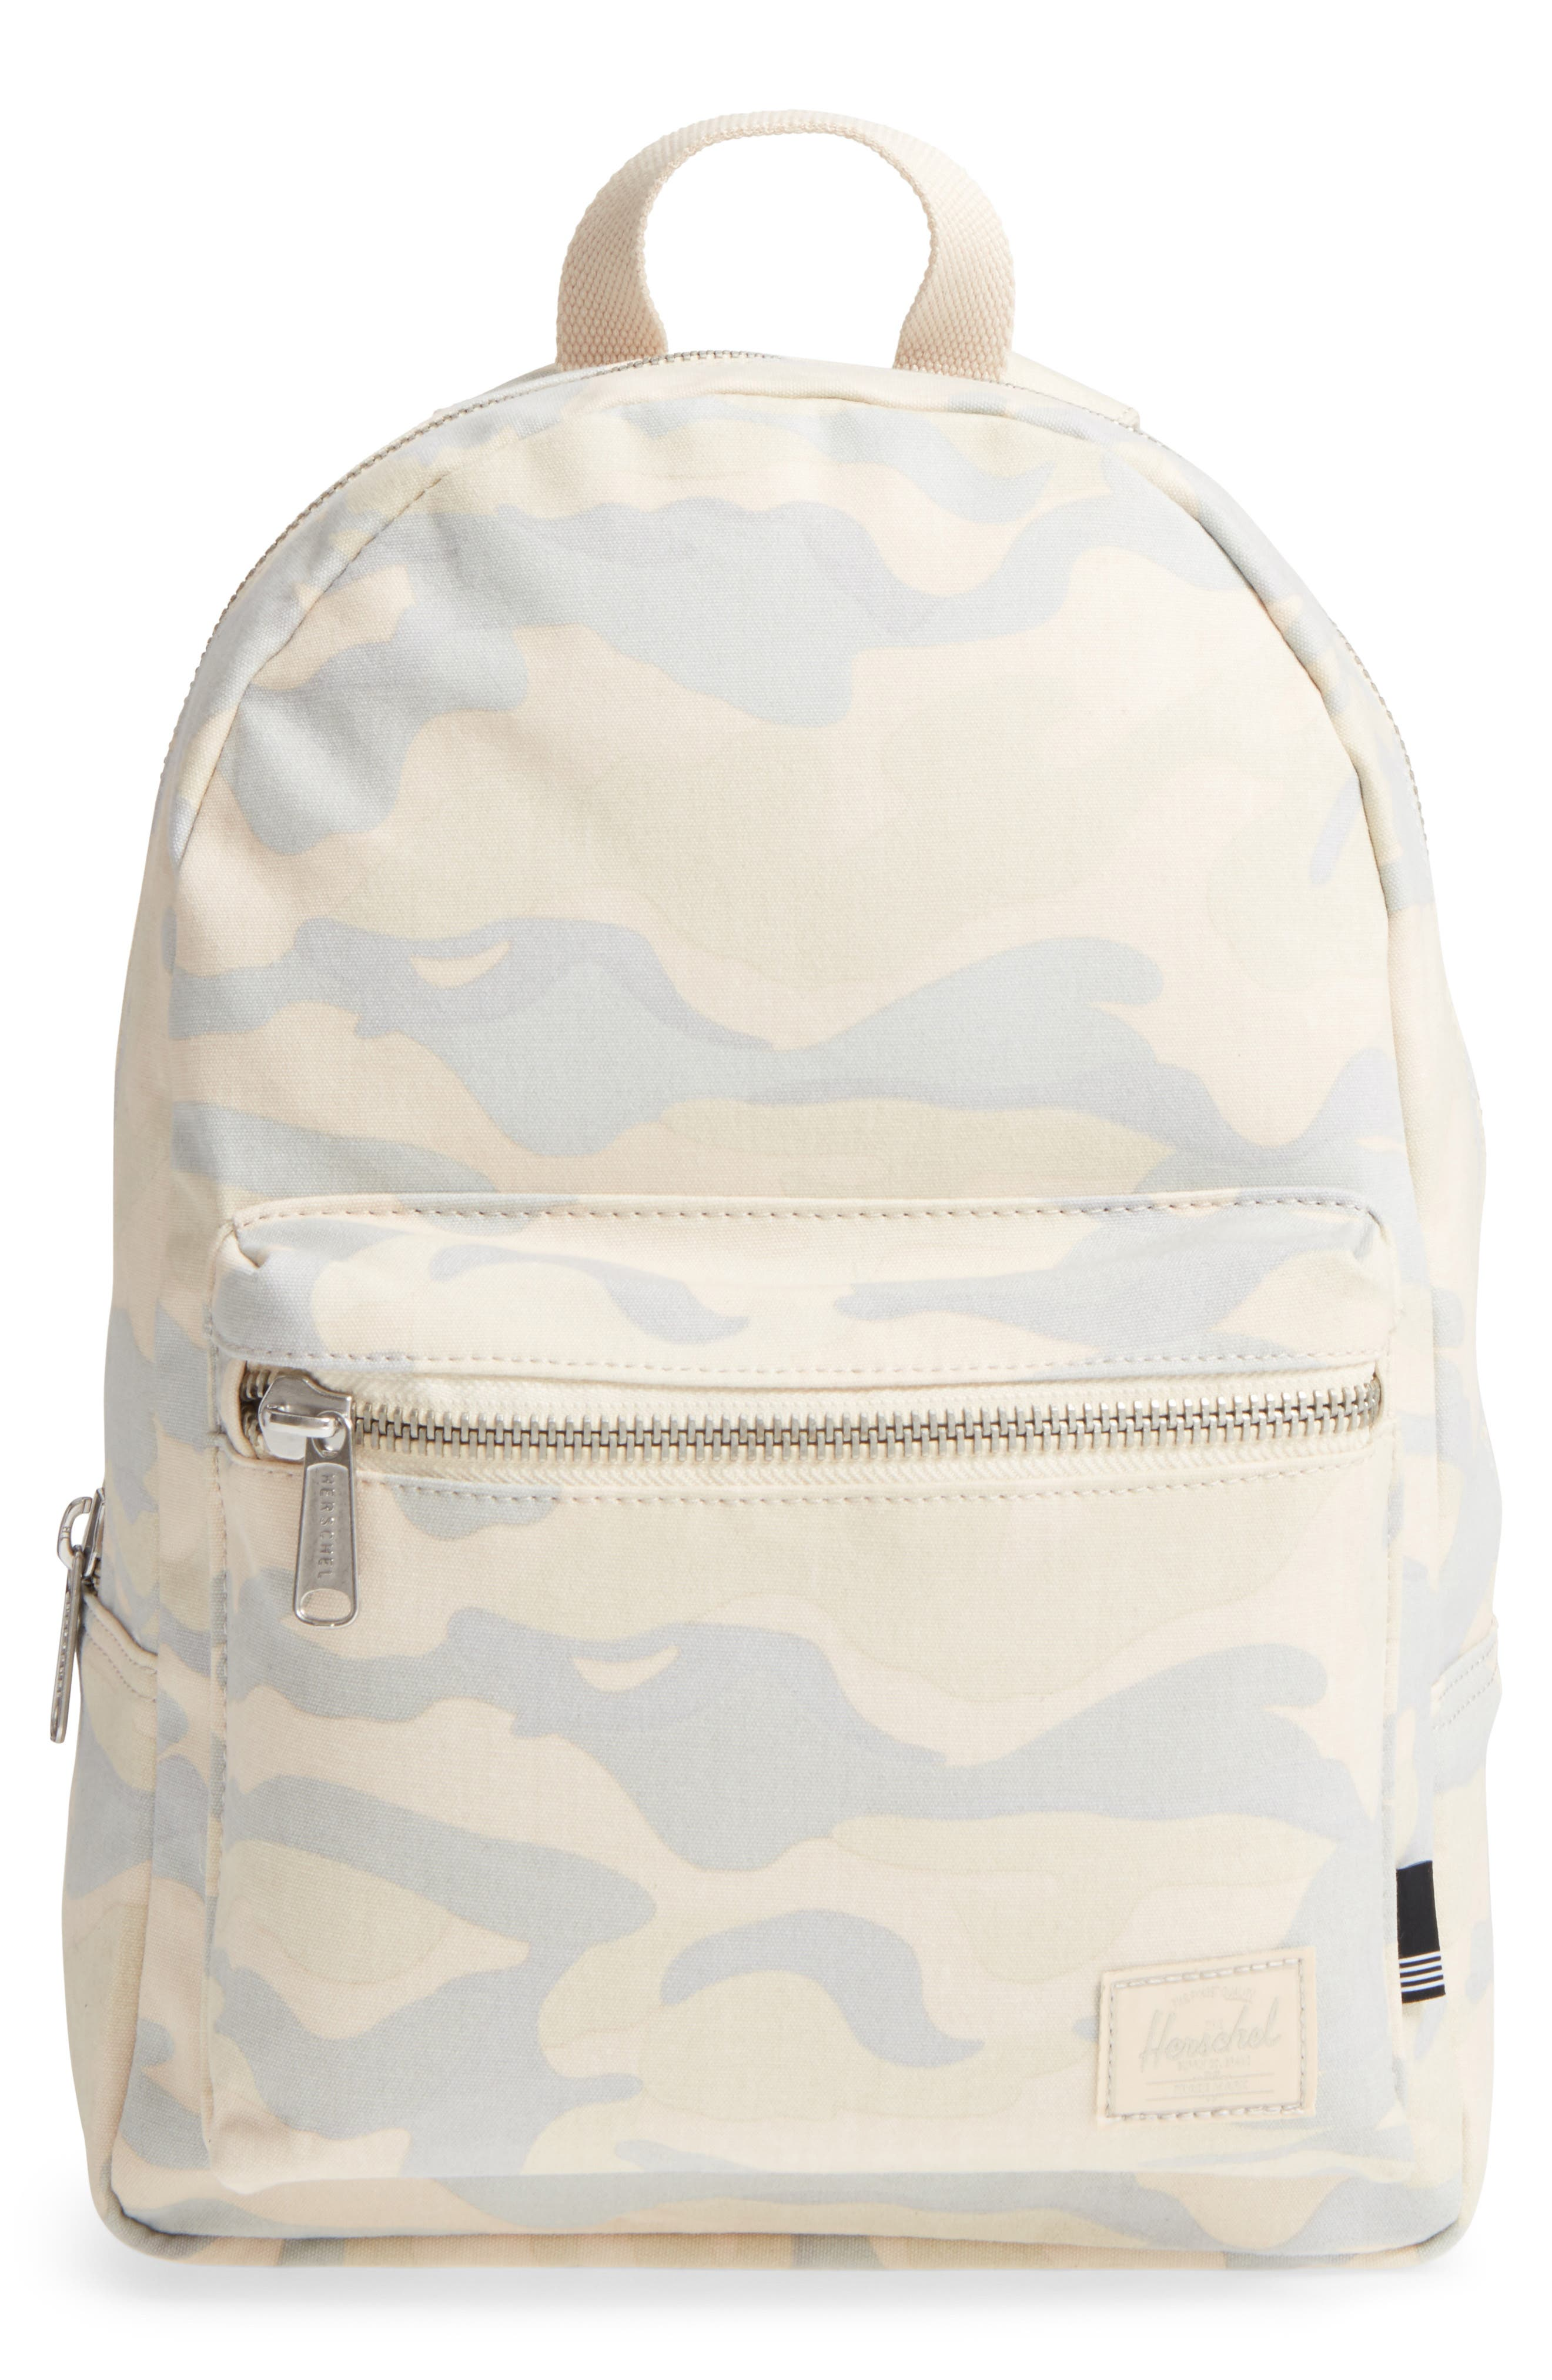 X-Small Grove Backpack,                             Main thumbnail 1, color,